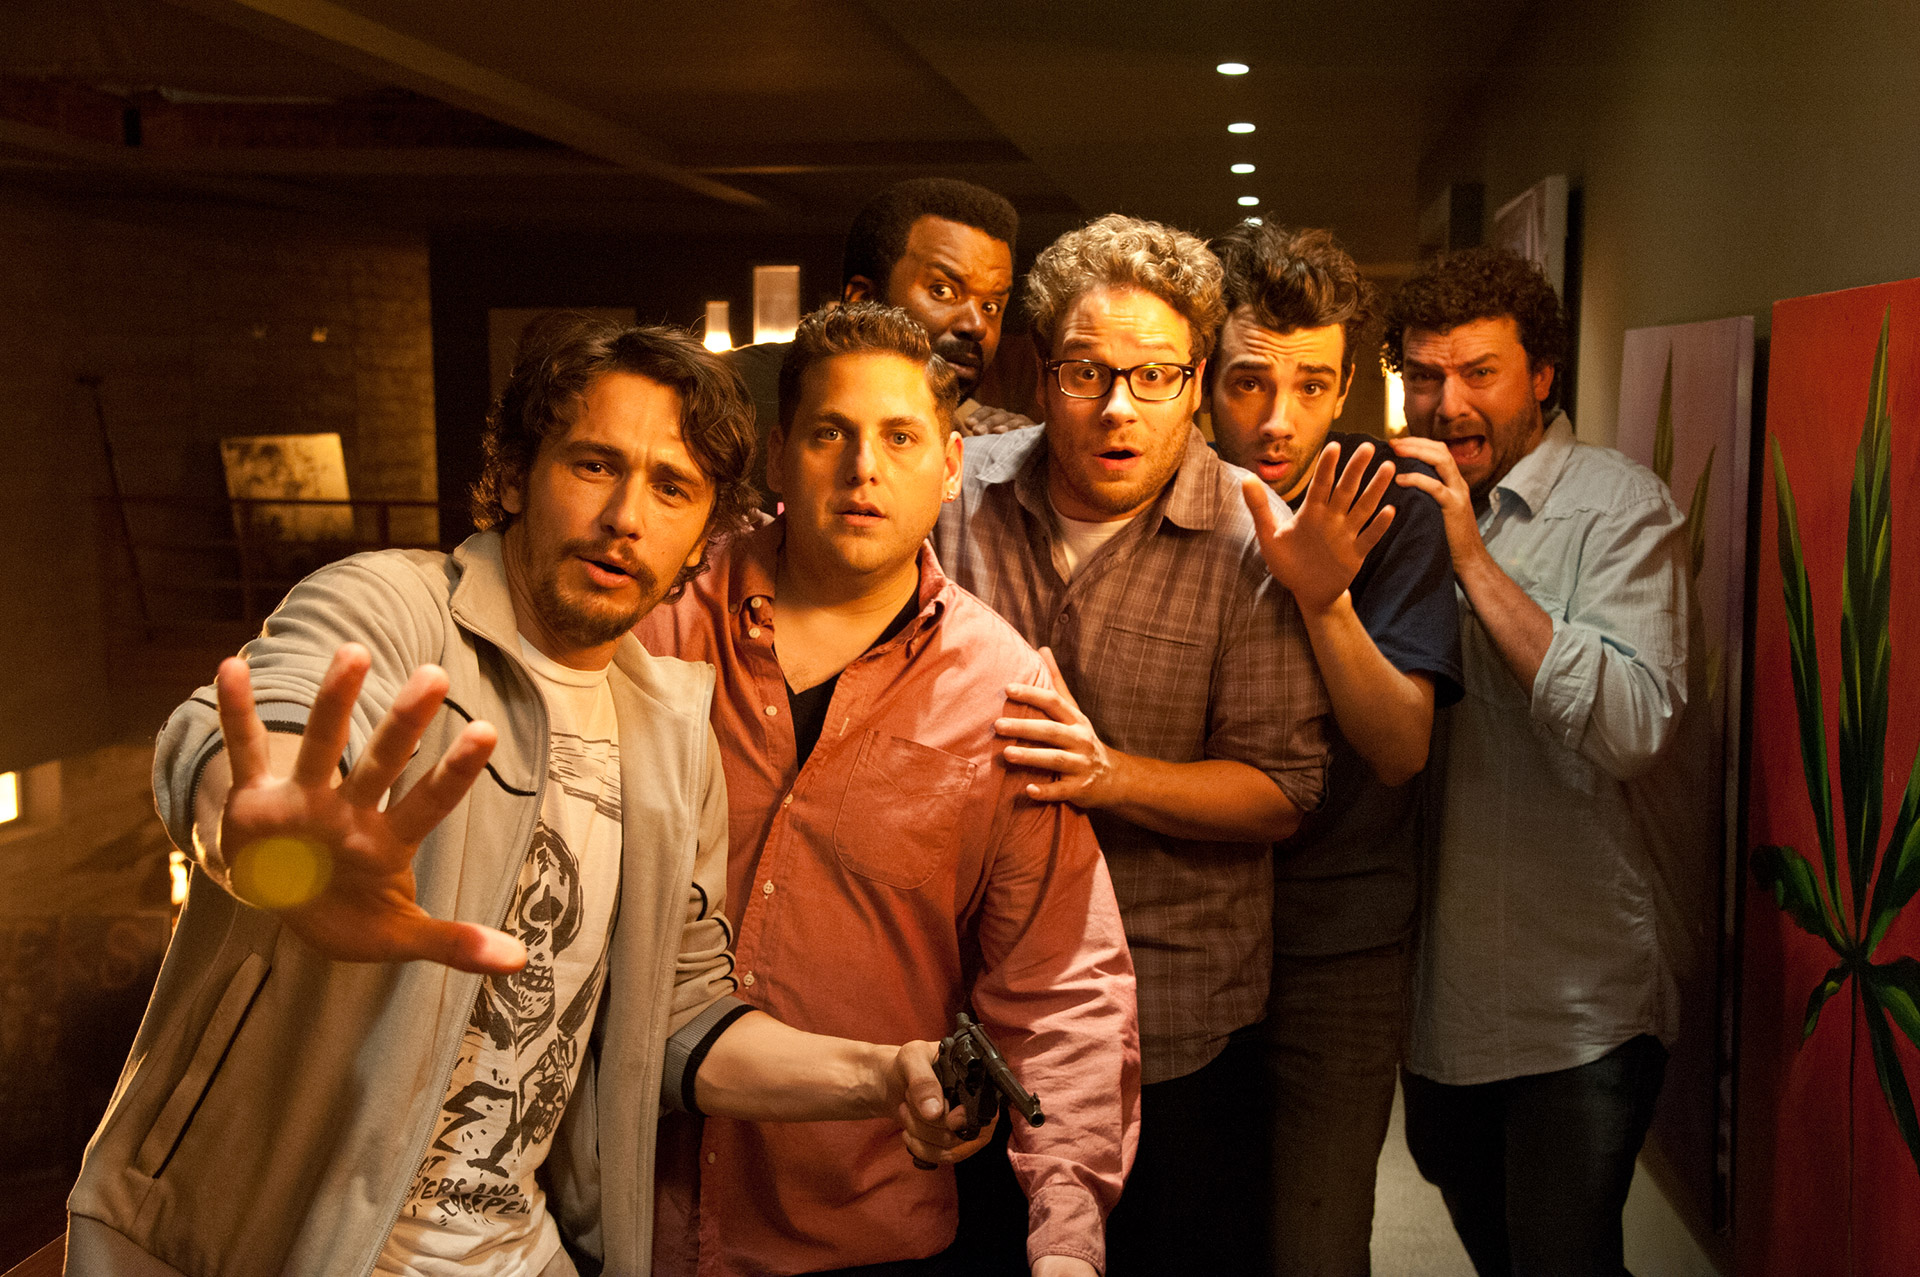 Franco, Hill, Rogen, Robinson, Baruchel, McBride: Scatalogical Escatology.